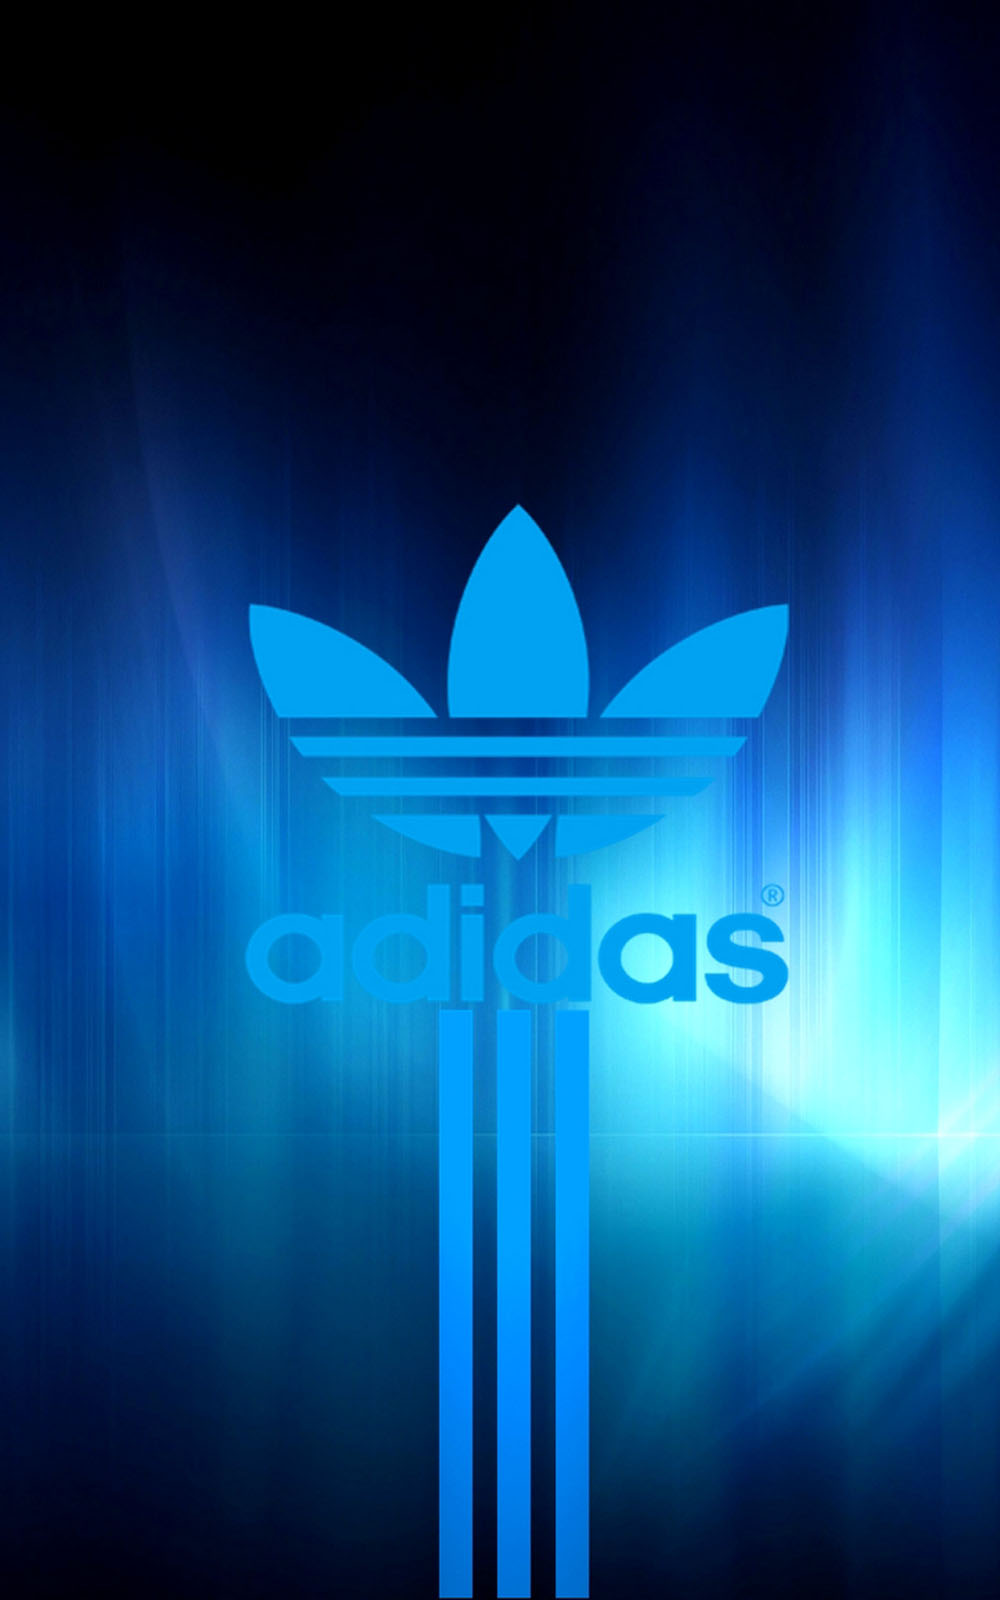 adidas blue logo download free hd mobile wallpapers